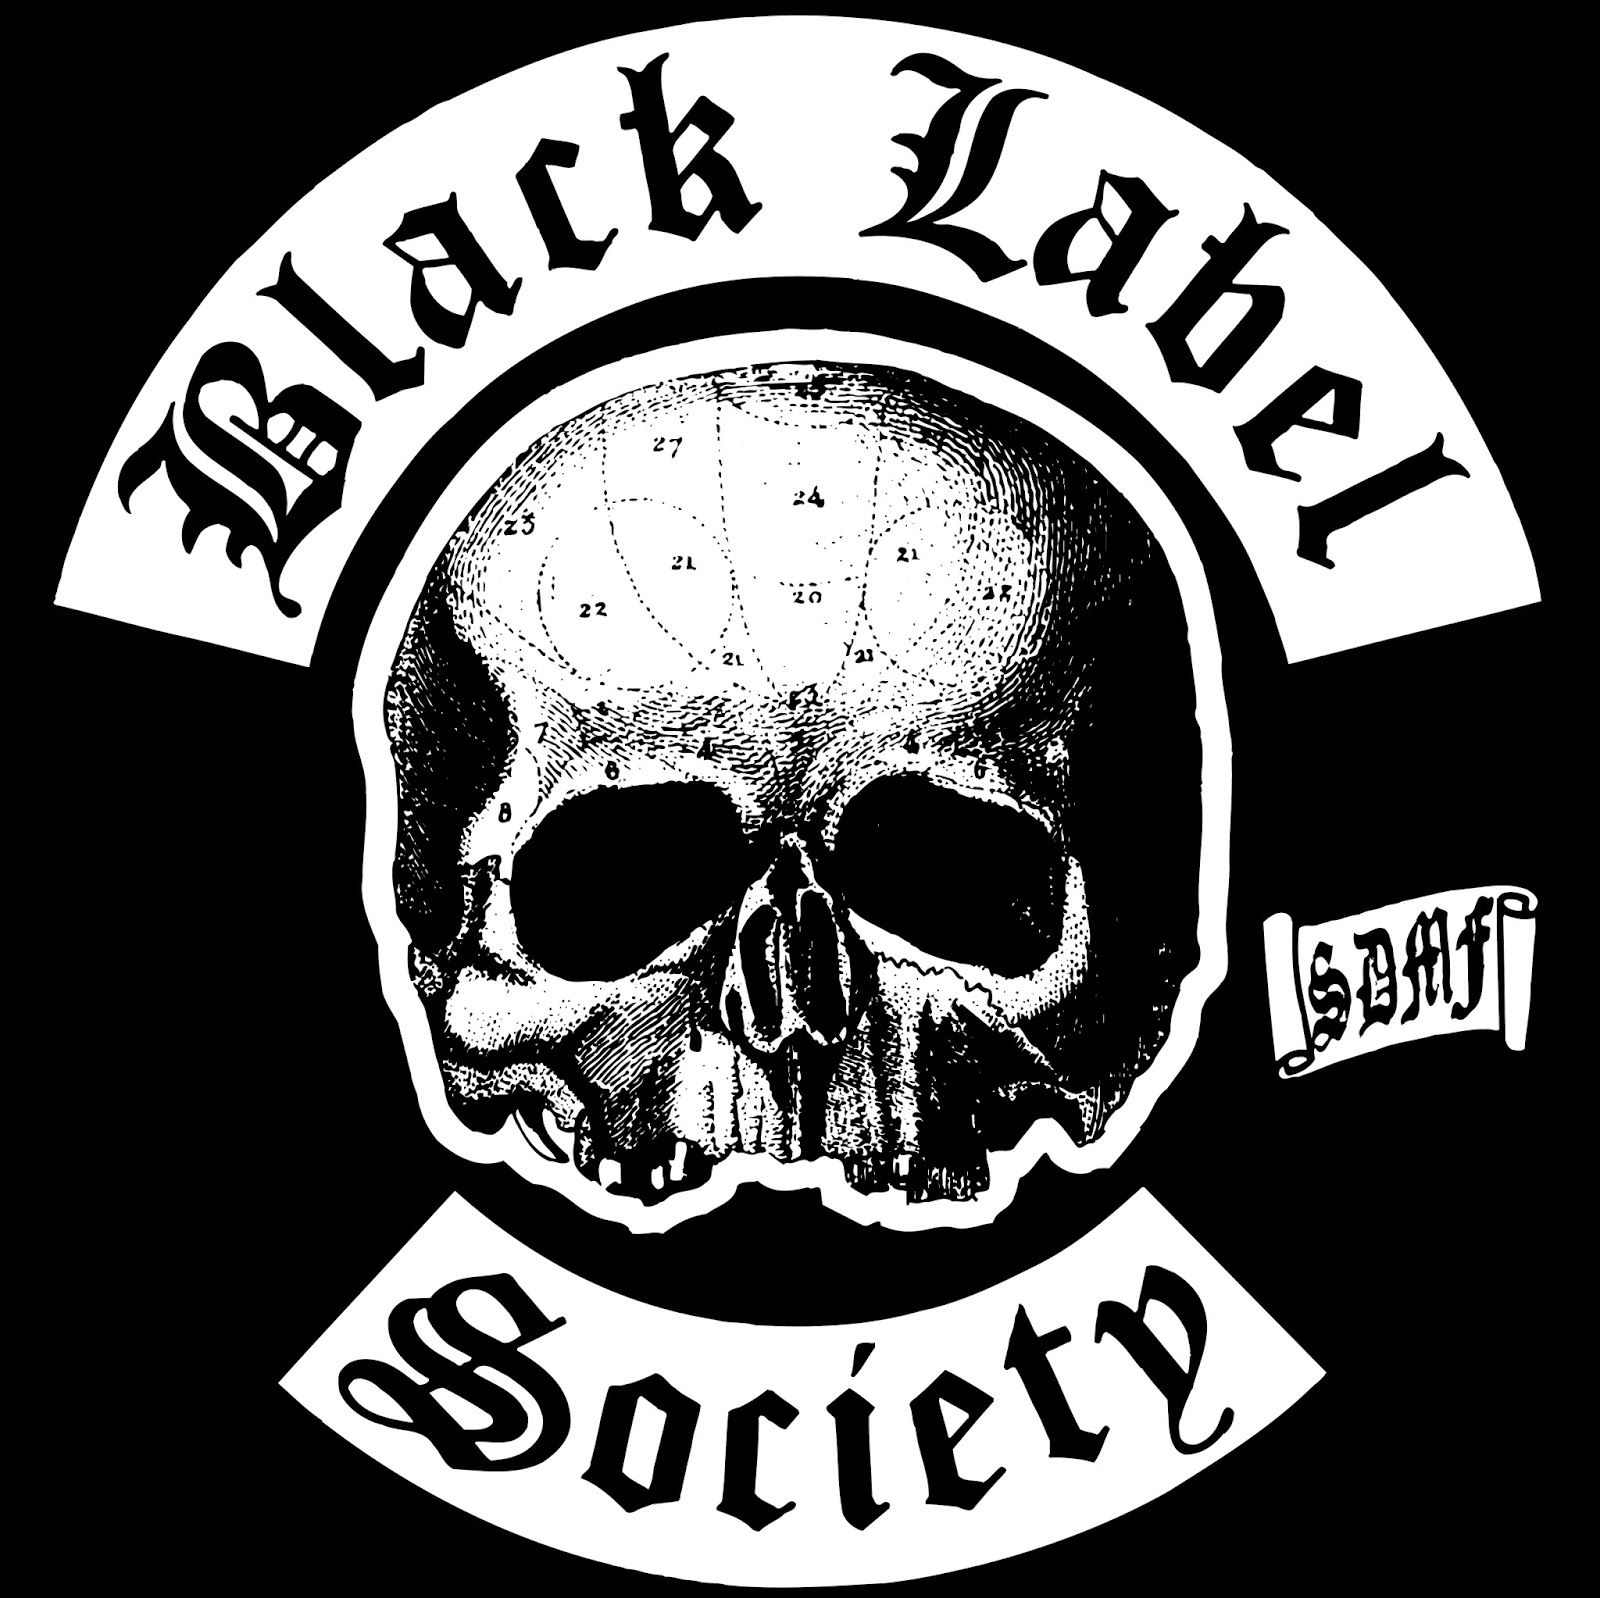 Logotipo de Black Label Society.